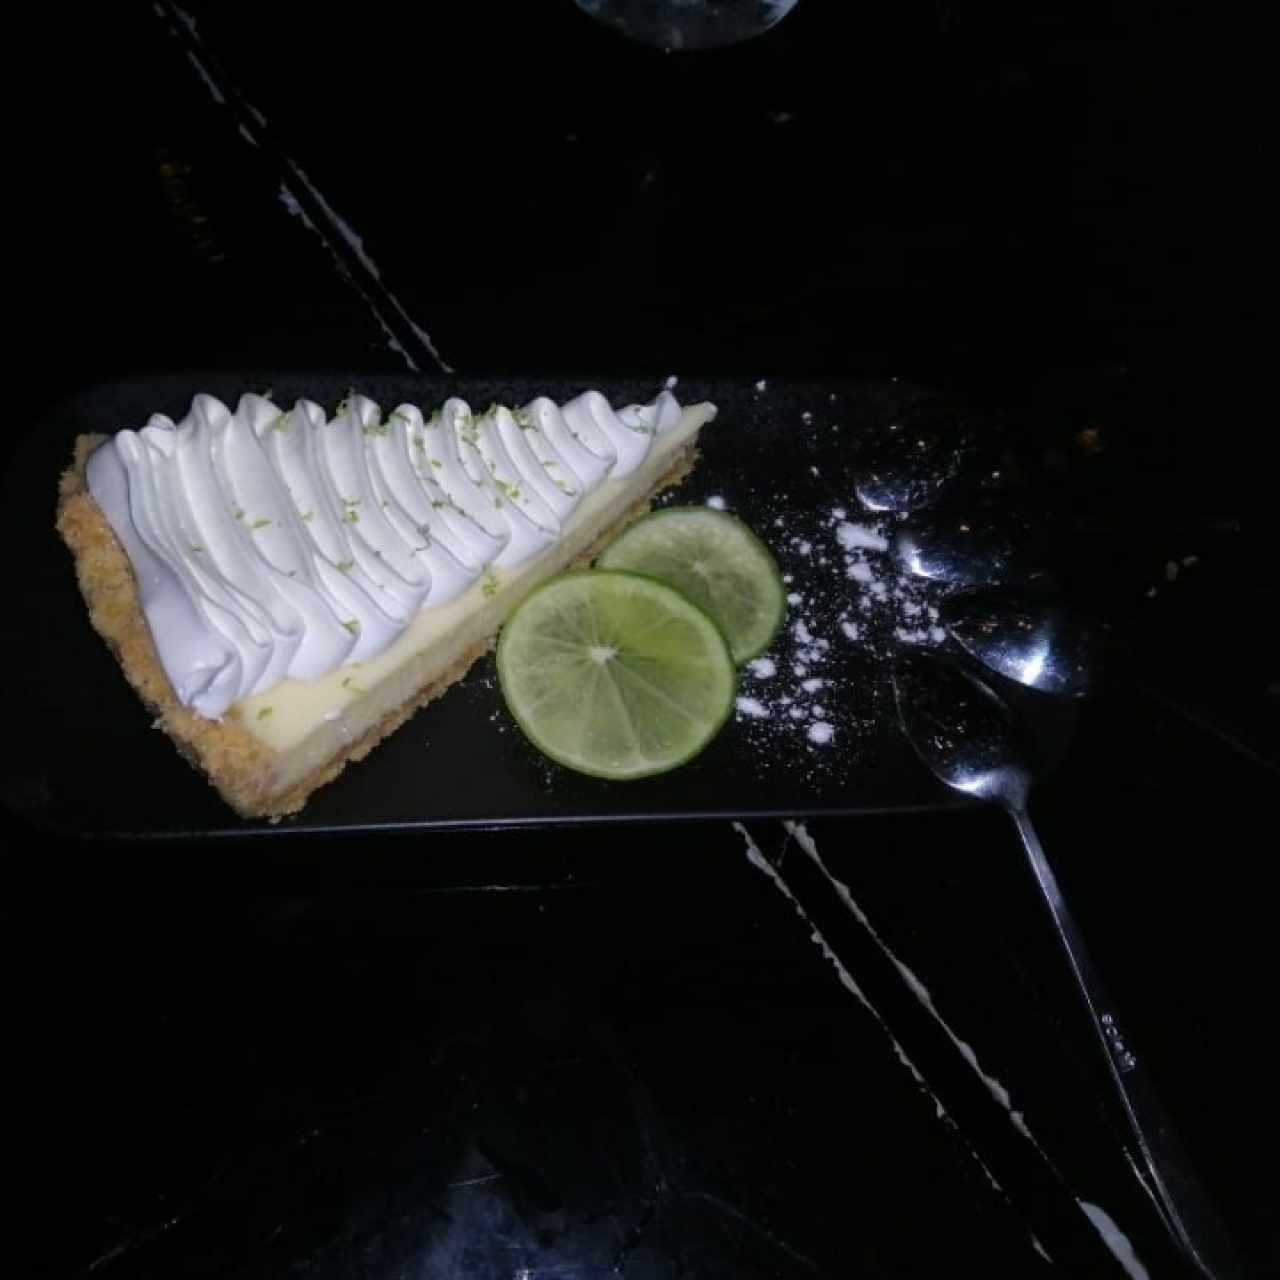 pie de limon(key lime pie)